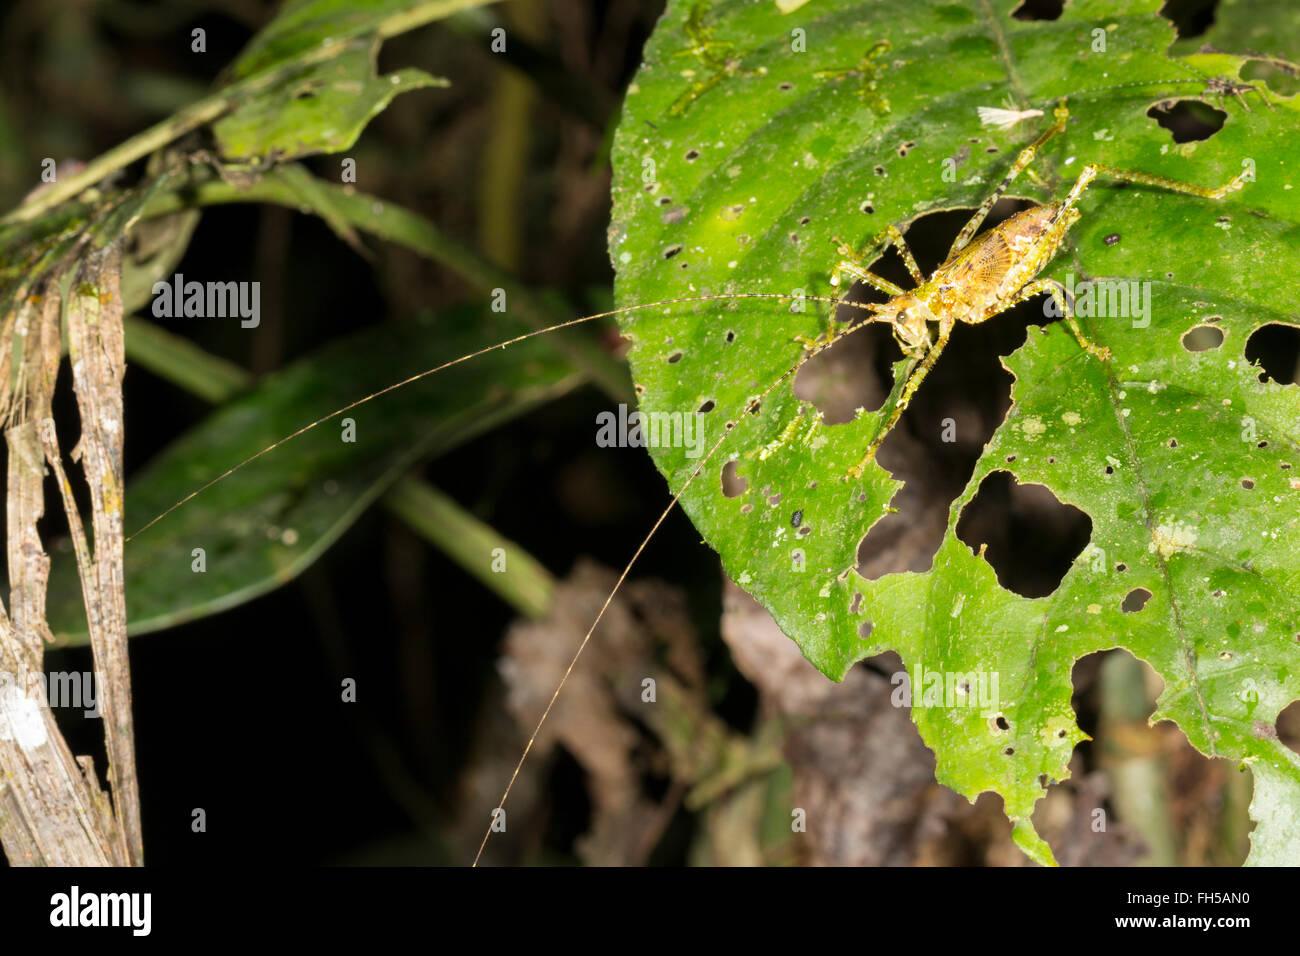 Katydid nymph with very long antennae in the rainforest, Pastaza province, Ecuador - Stock Image